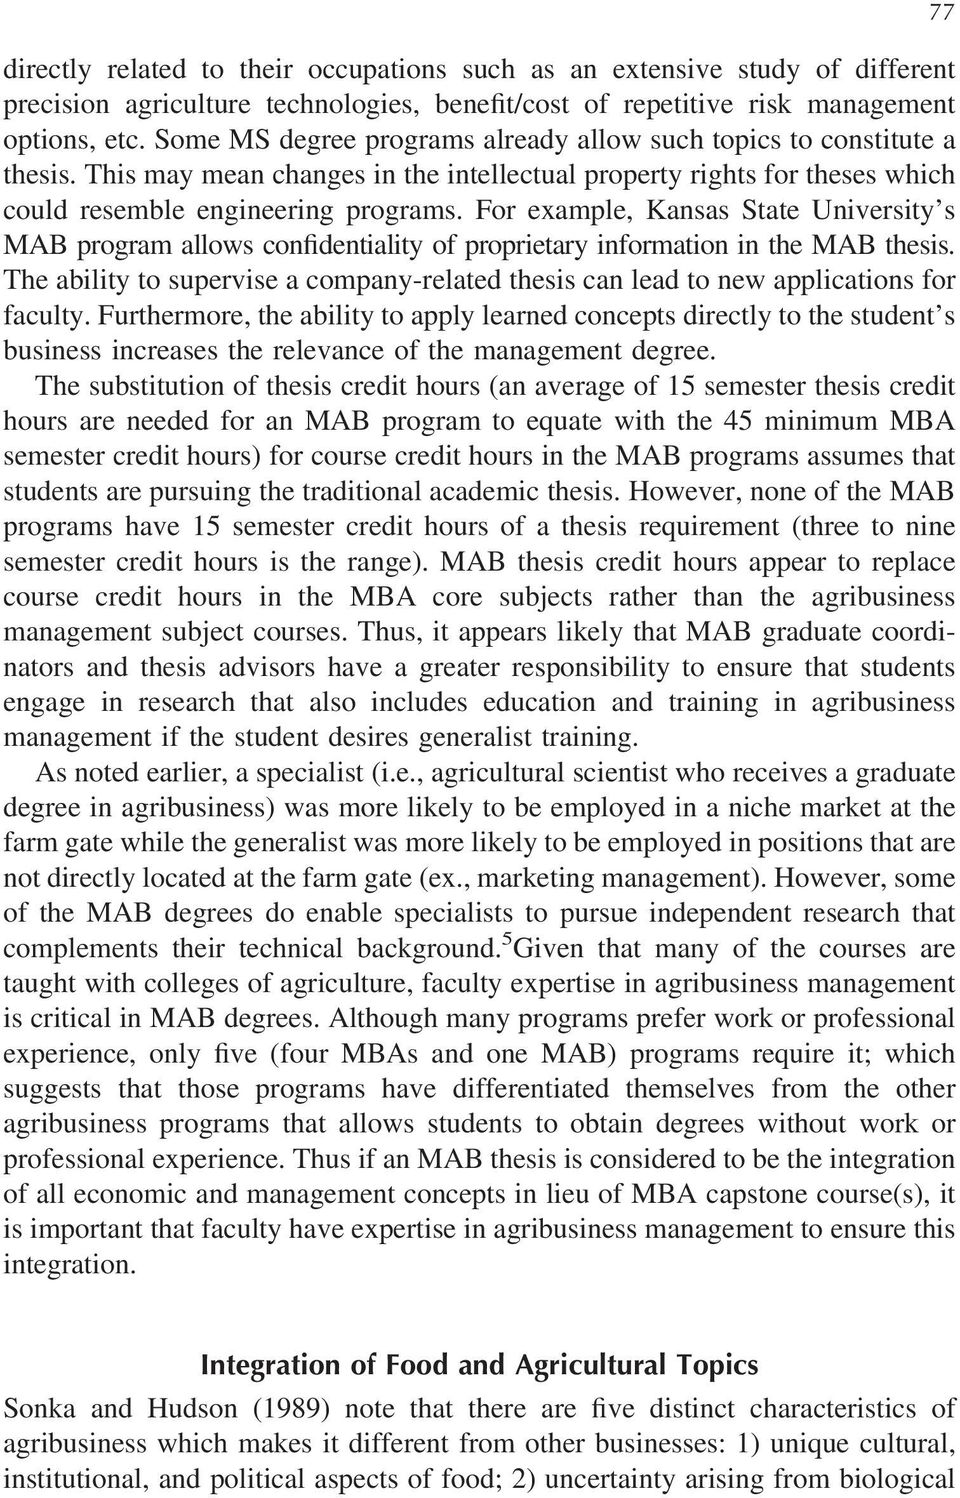 For example, Kansas State s MAB program allows confidentiality of proprietary information in the MAB thesis. The ability to supervise a company-related thesis can lead to new applications for faculty.